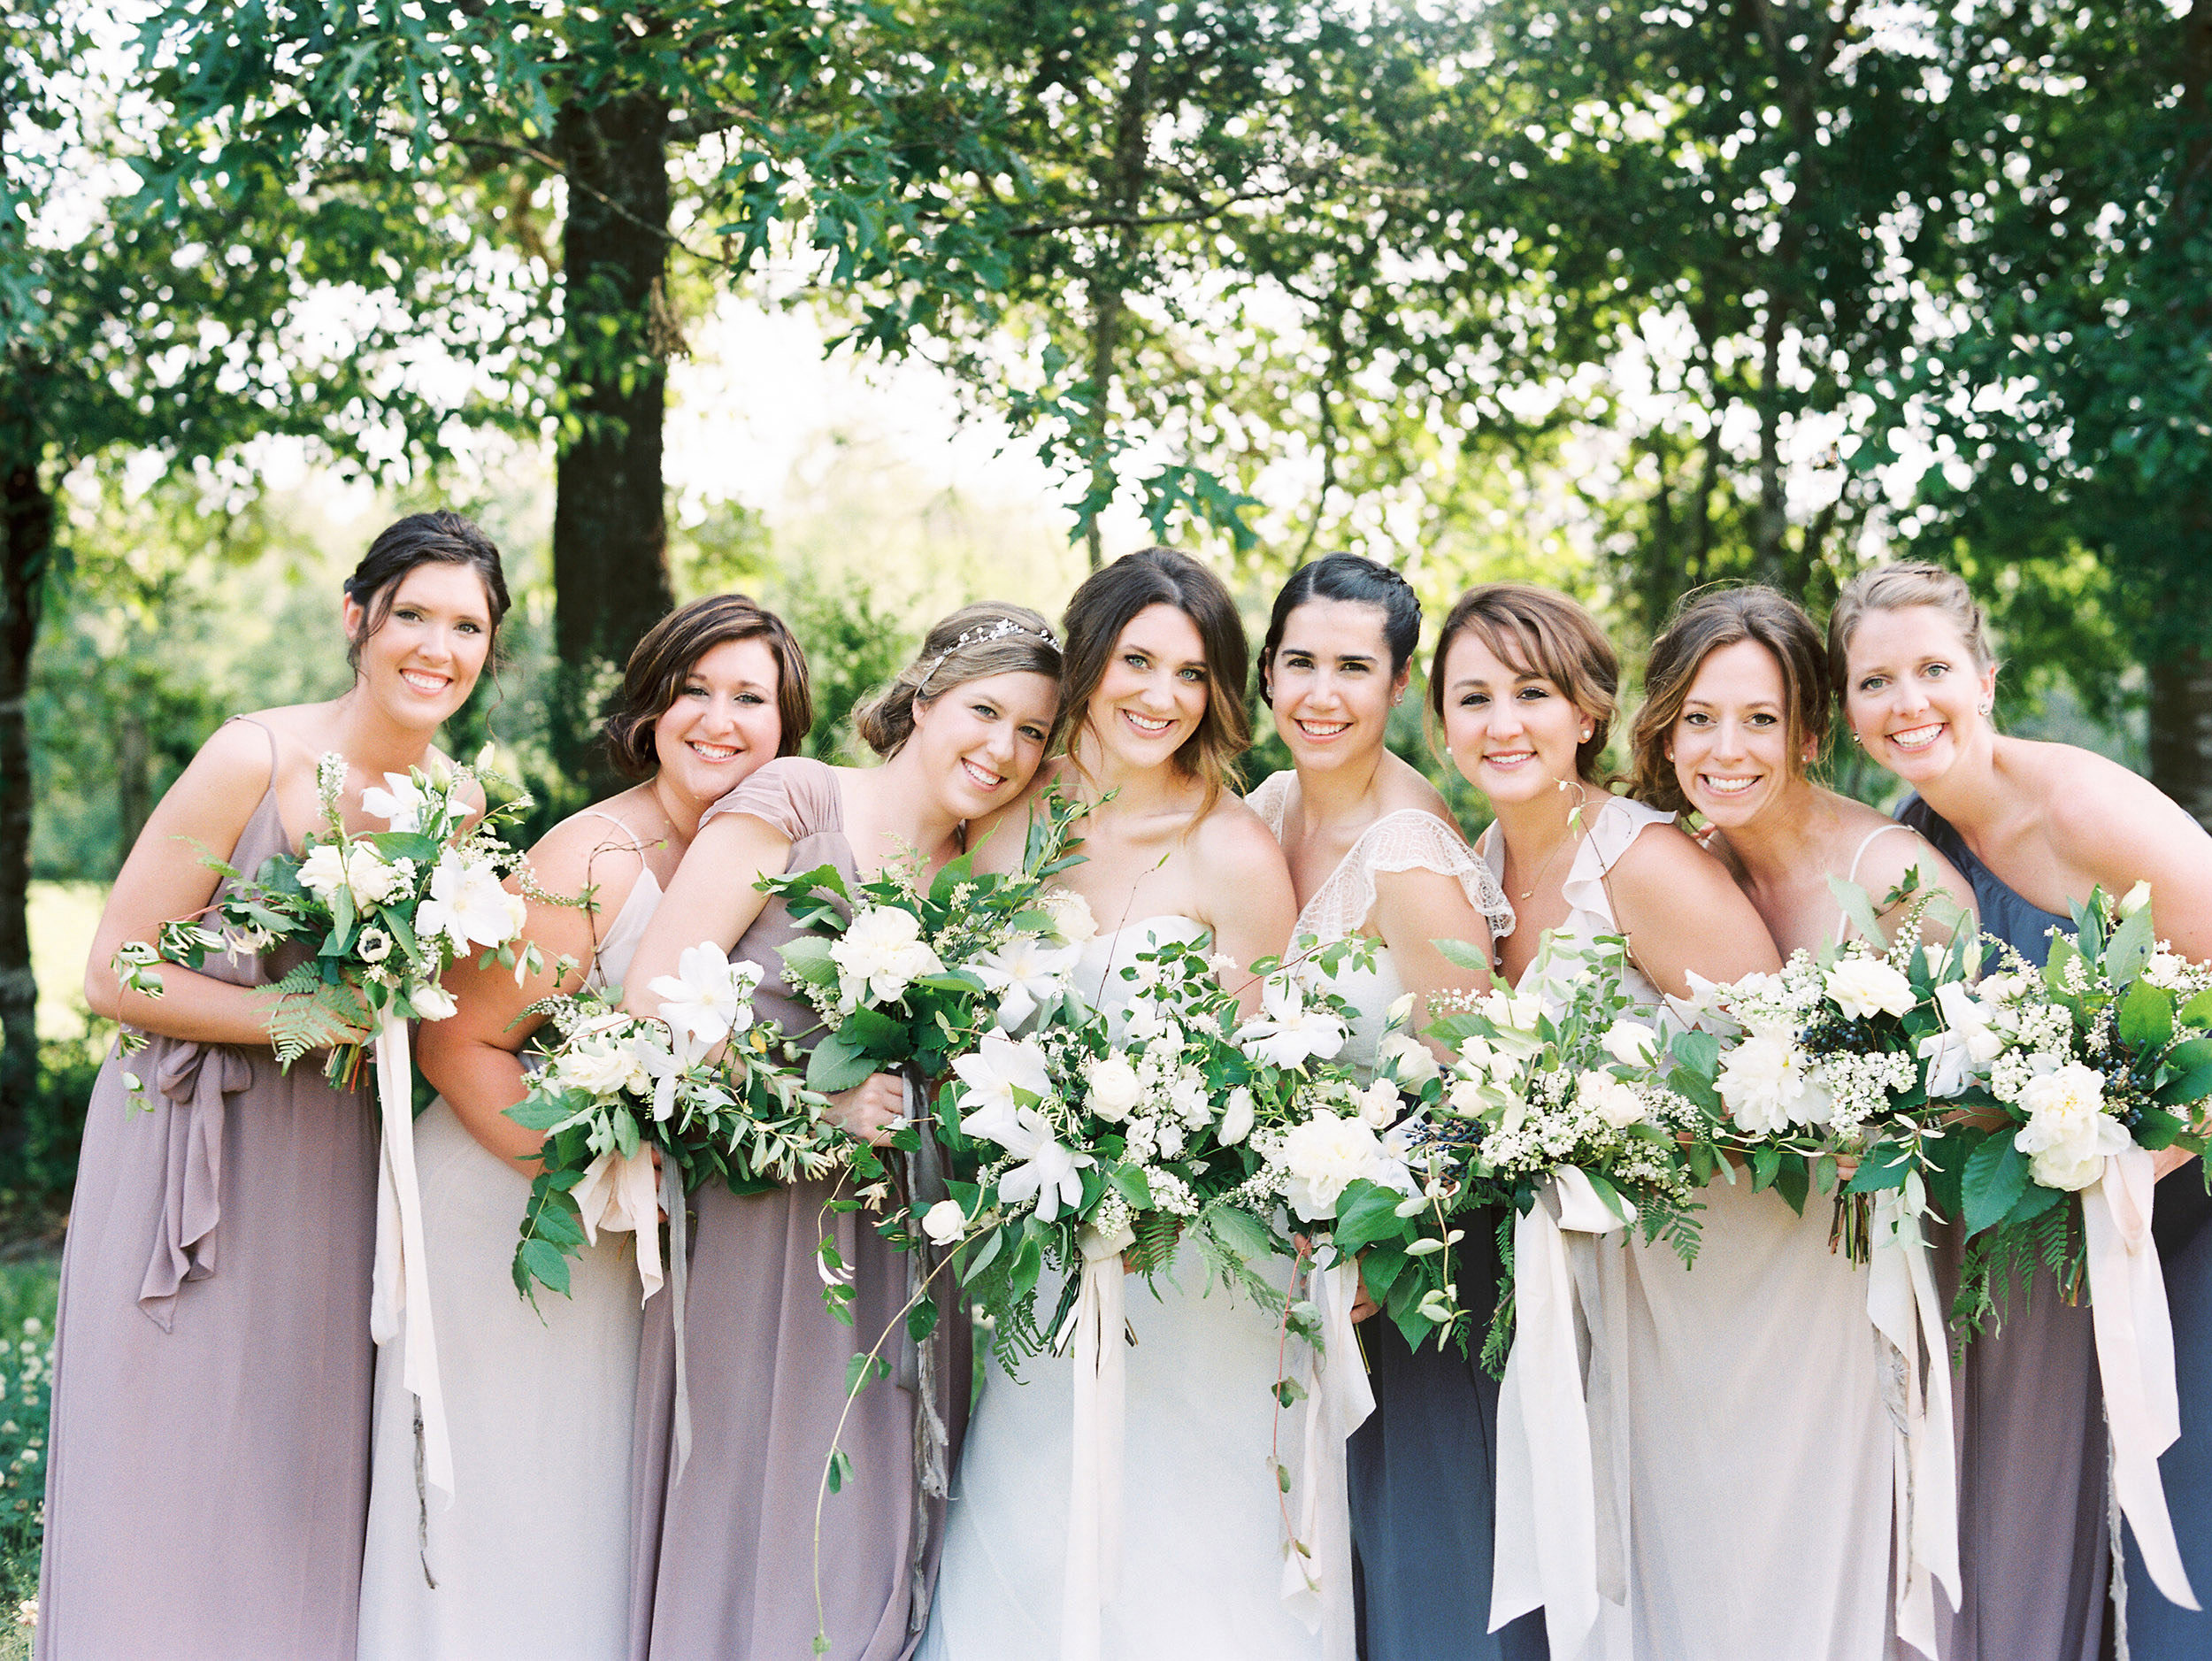 Outdoor-Mississippi-Wedding-by-Mitchell-Willis-Events-and-Lauren-Kinsey-Photography.jpg